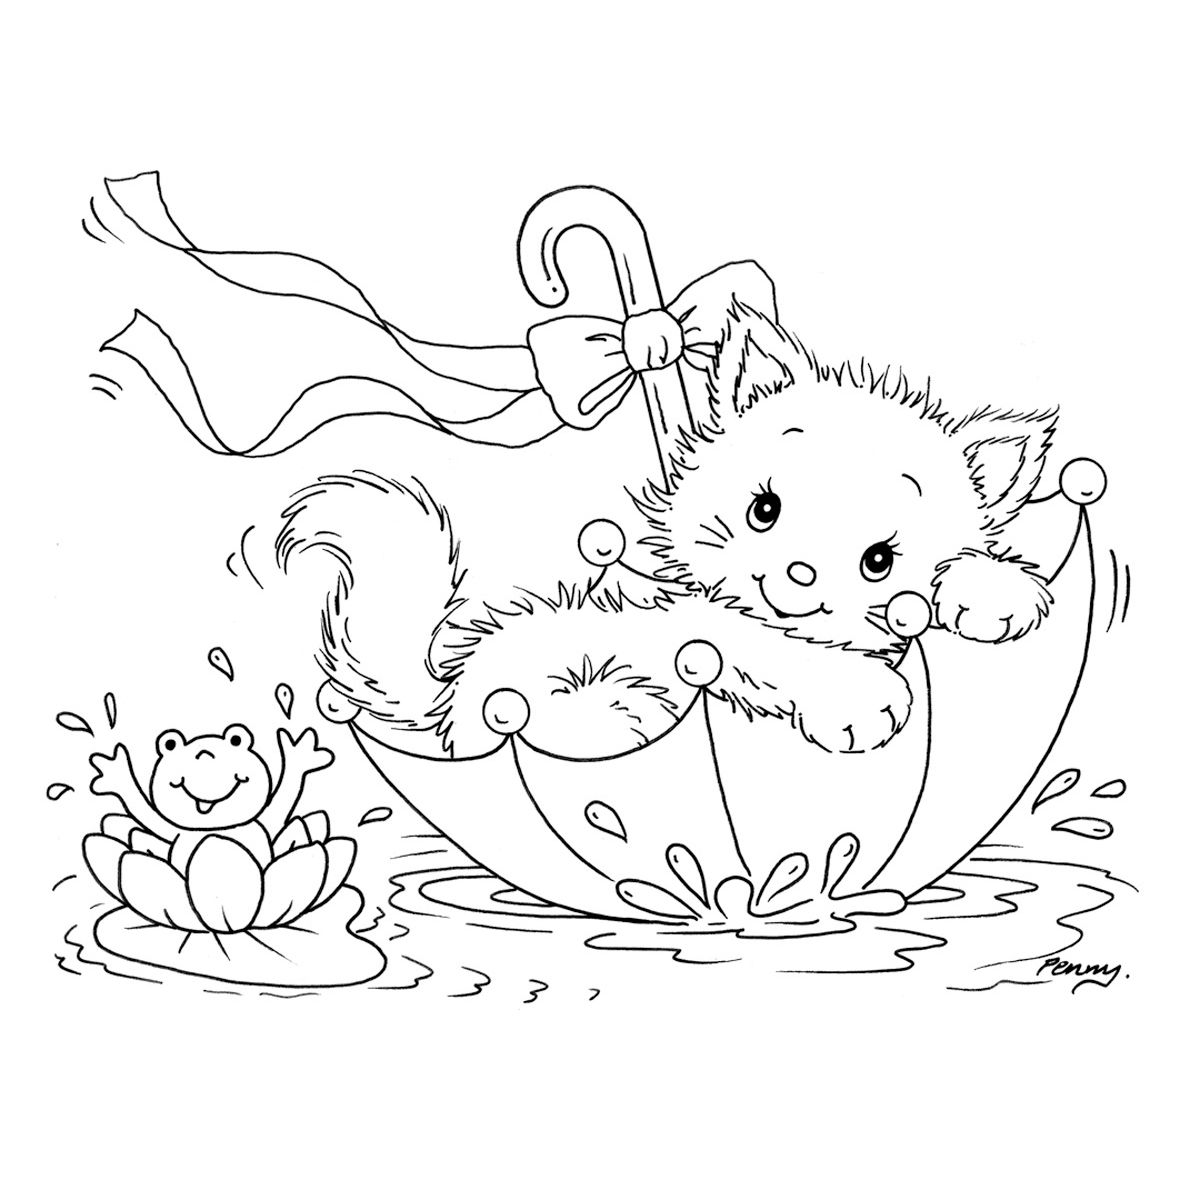 Pin By Ann Hanzlik On Clip Art Cat Coloring Page Coloring Pages